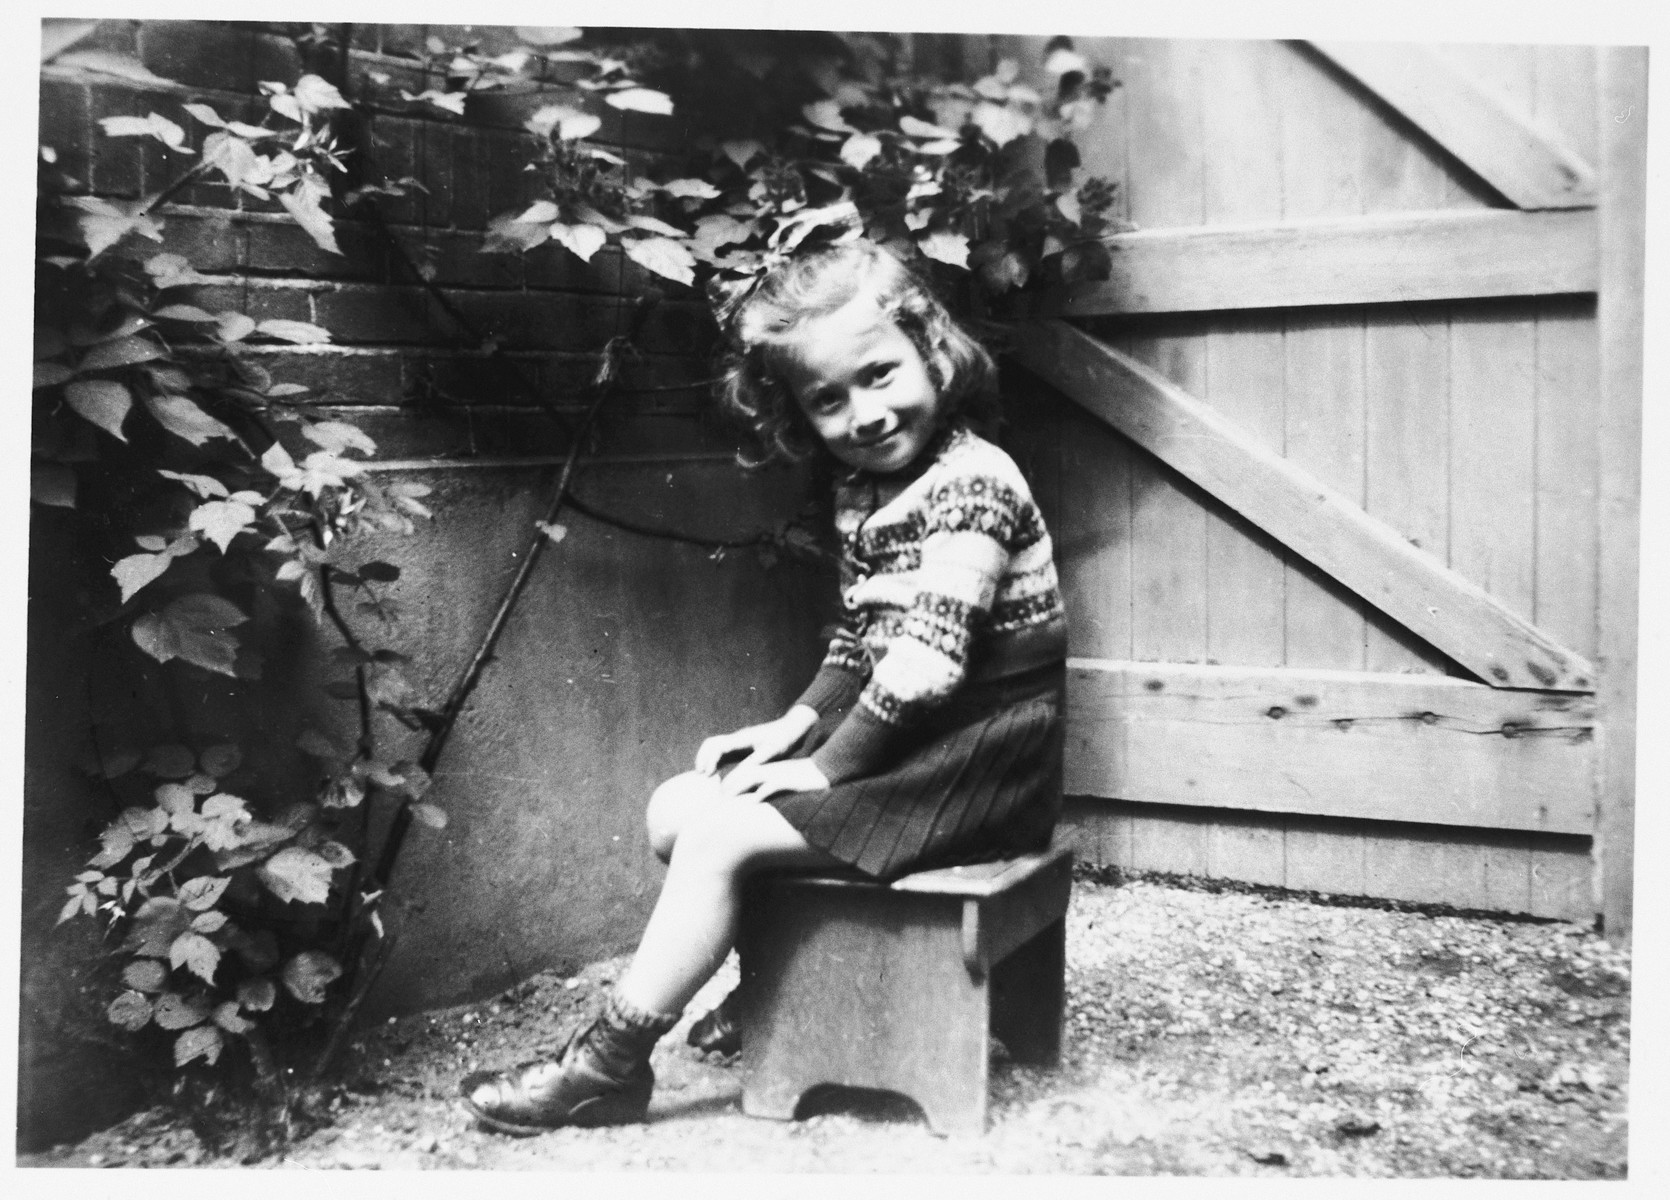 A young Jewish child sits in the garden of her Dutch rescuers' home wearing a sweater made by her mother prior to her deportation.  Pictured is Truusje Schoenfeld just before leaving the home of her rescuers to return to Amsterdam after the war.